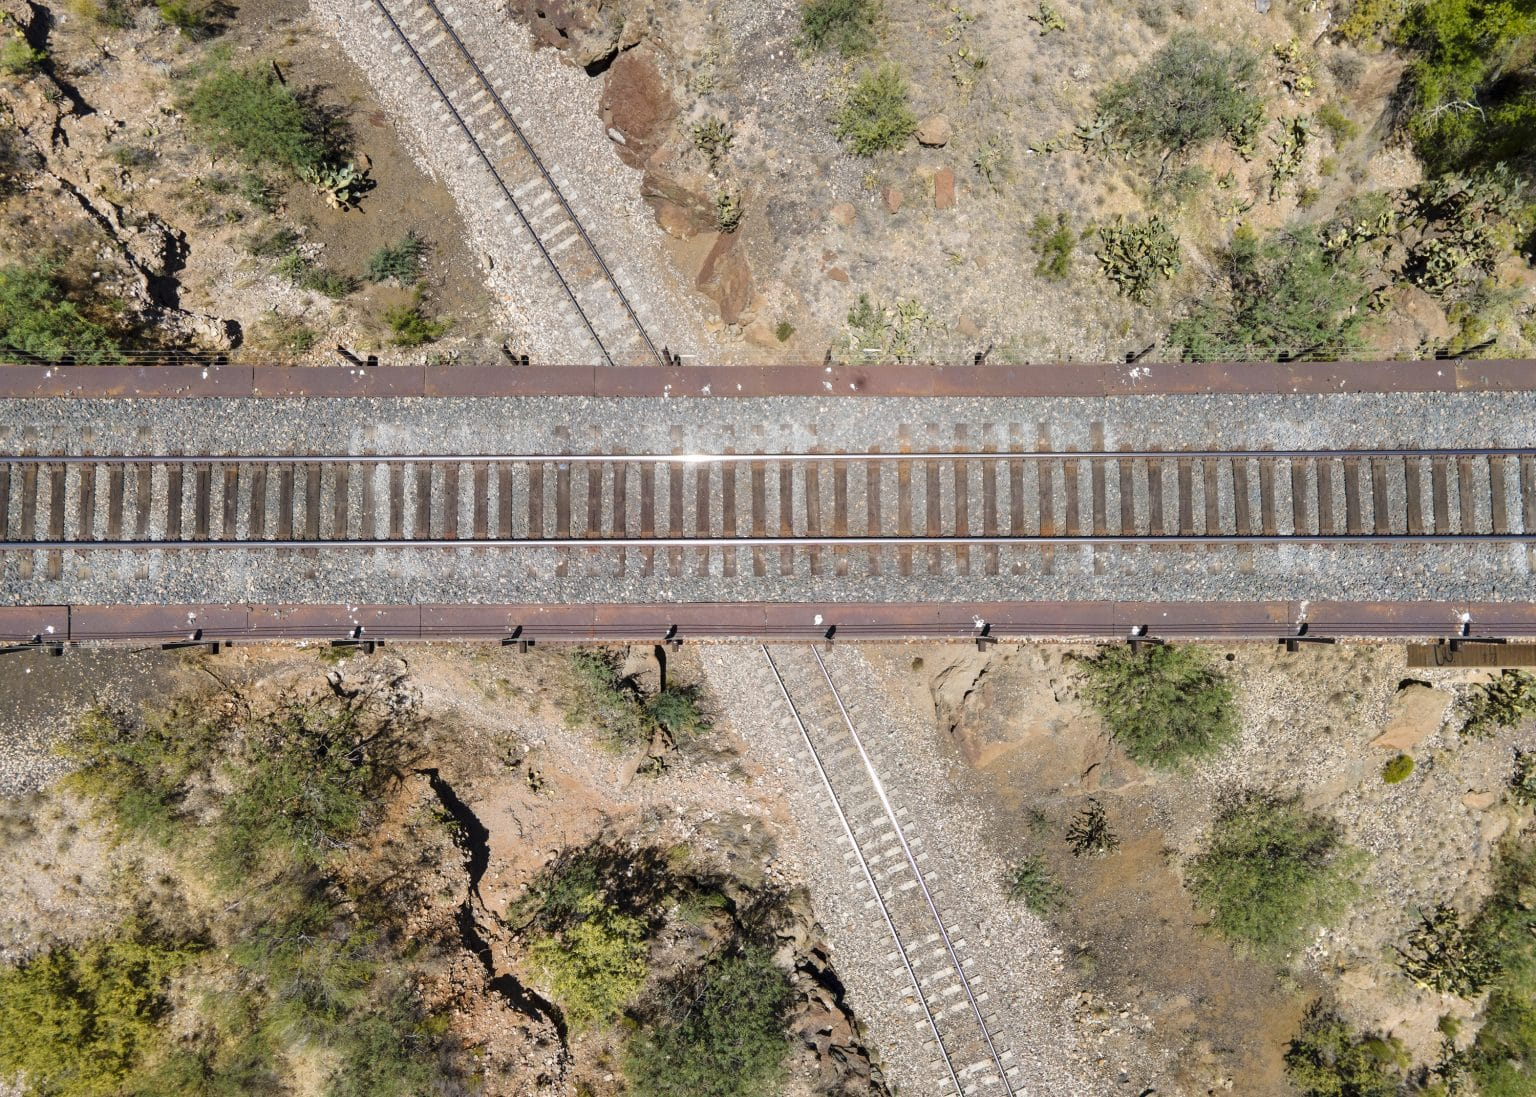 cienega train bridge crossed tracks drone photo